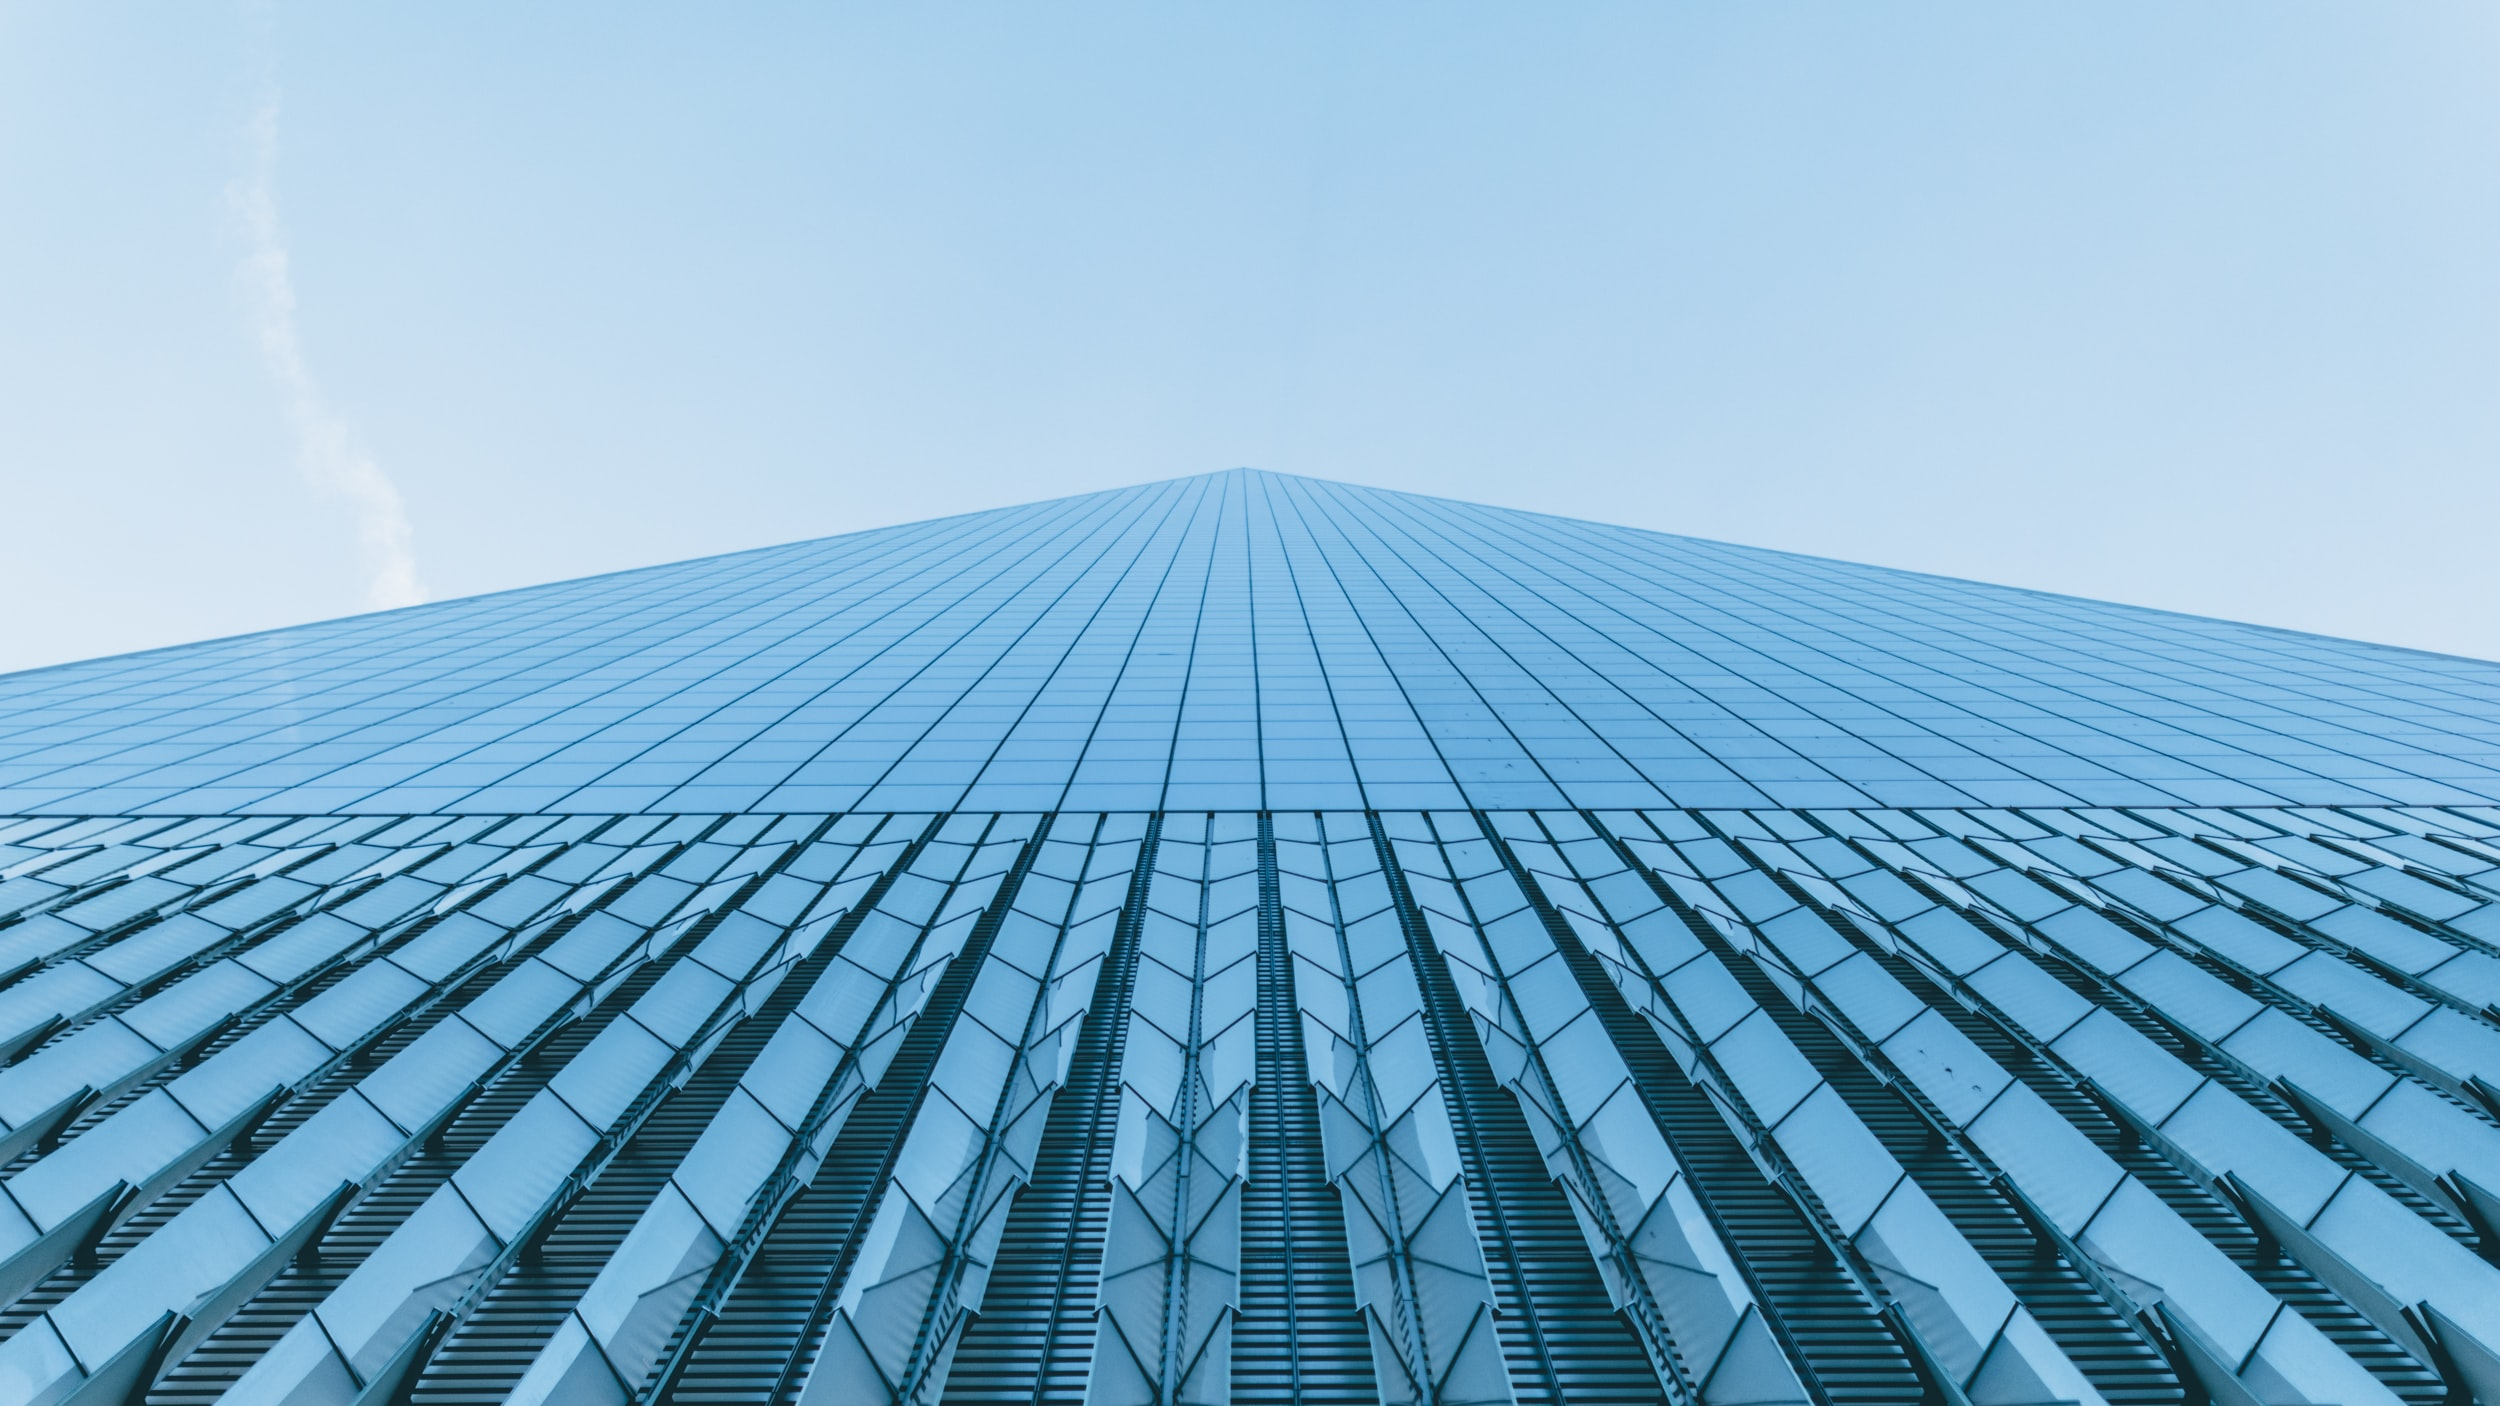 A low-angle shot of a towering skyscraper with a glass facade